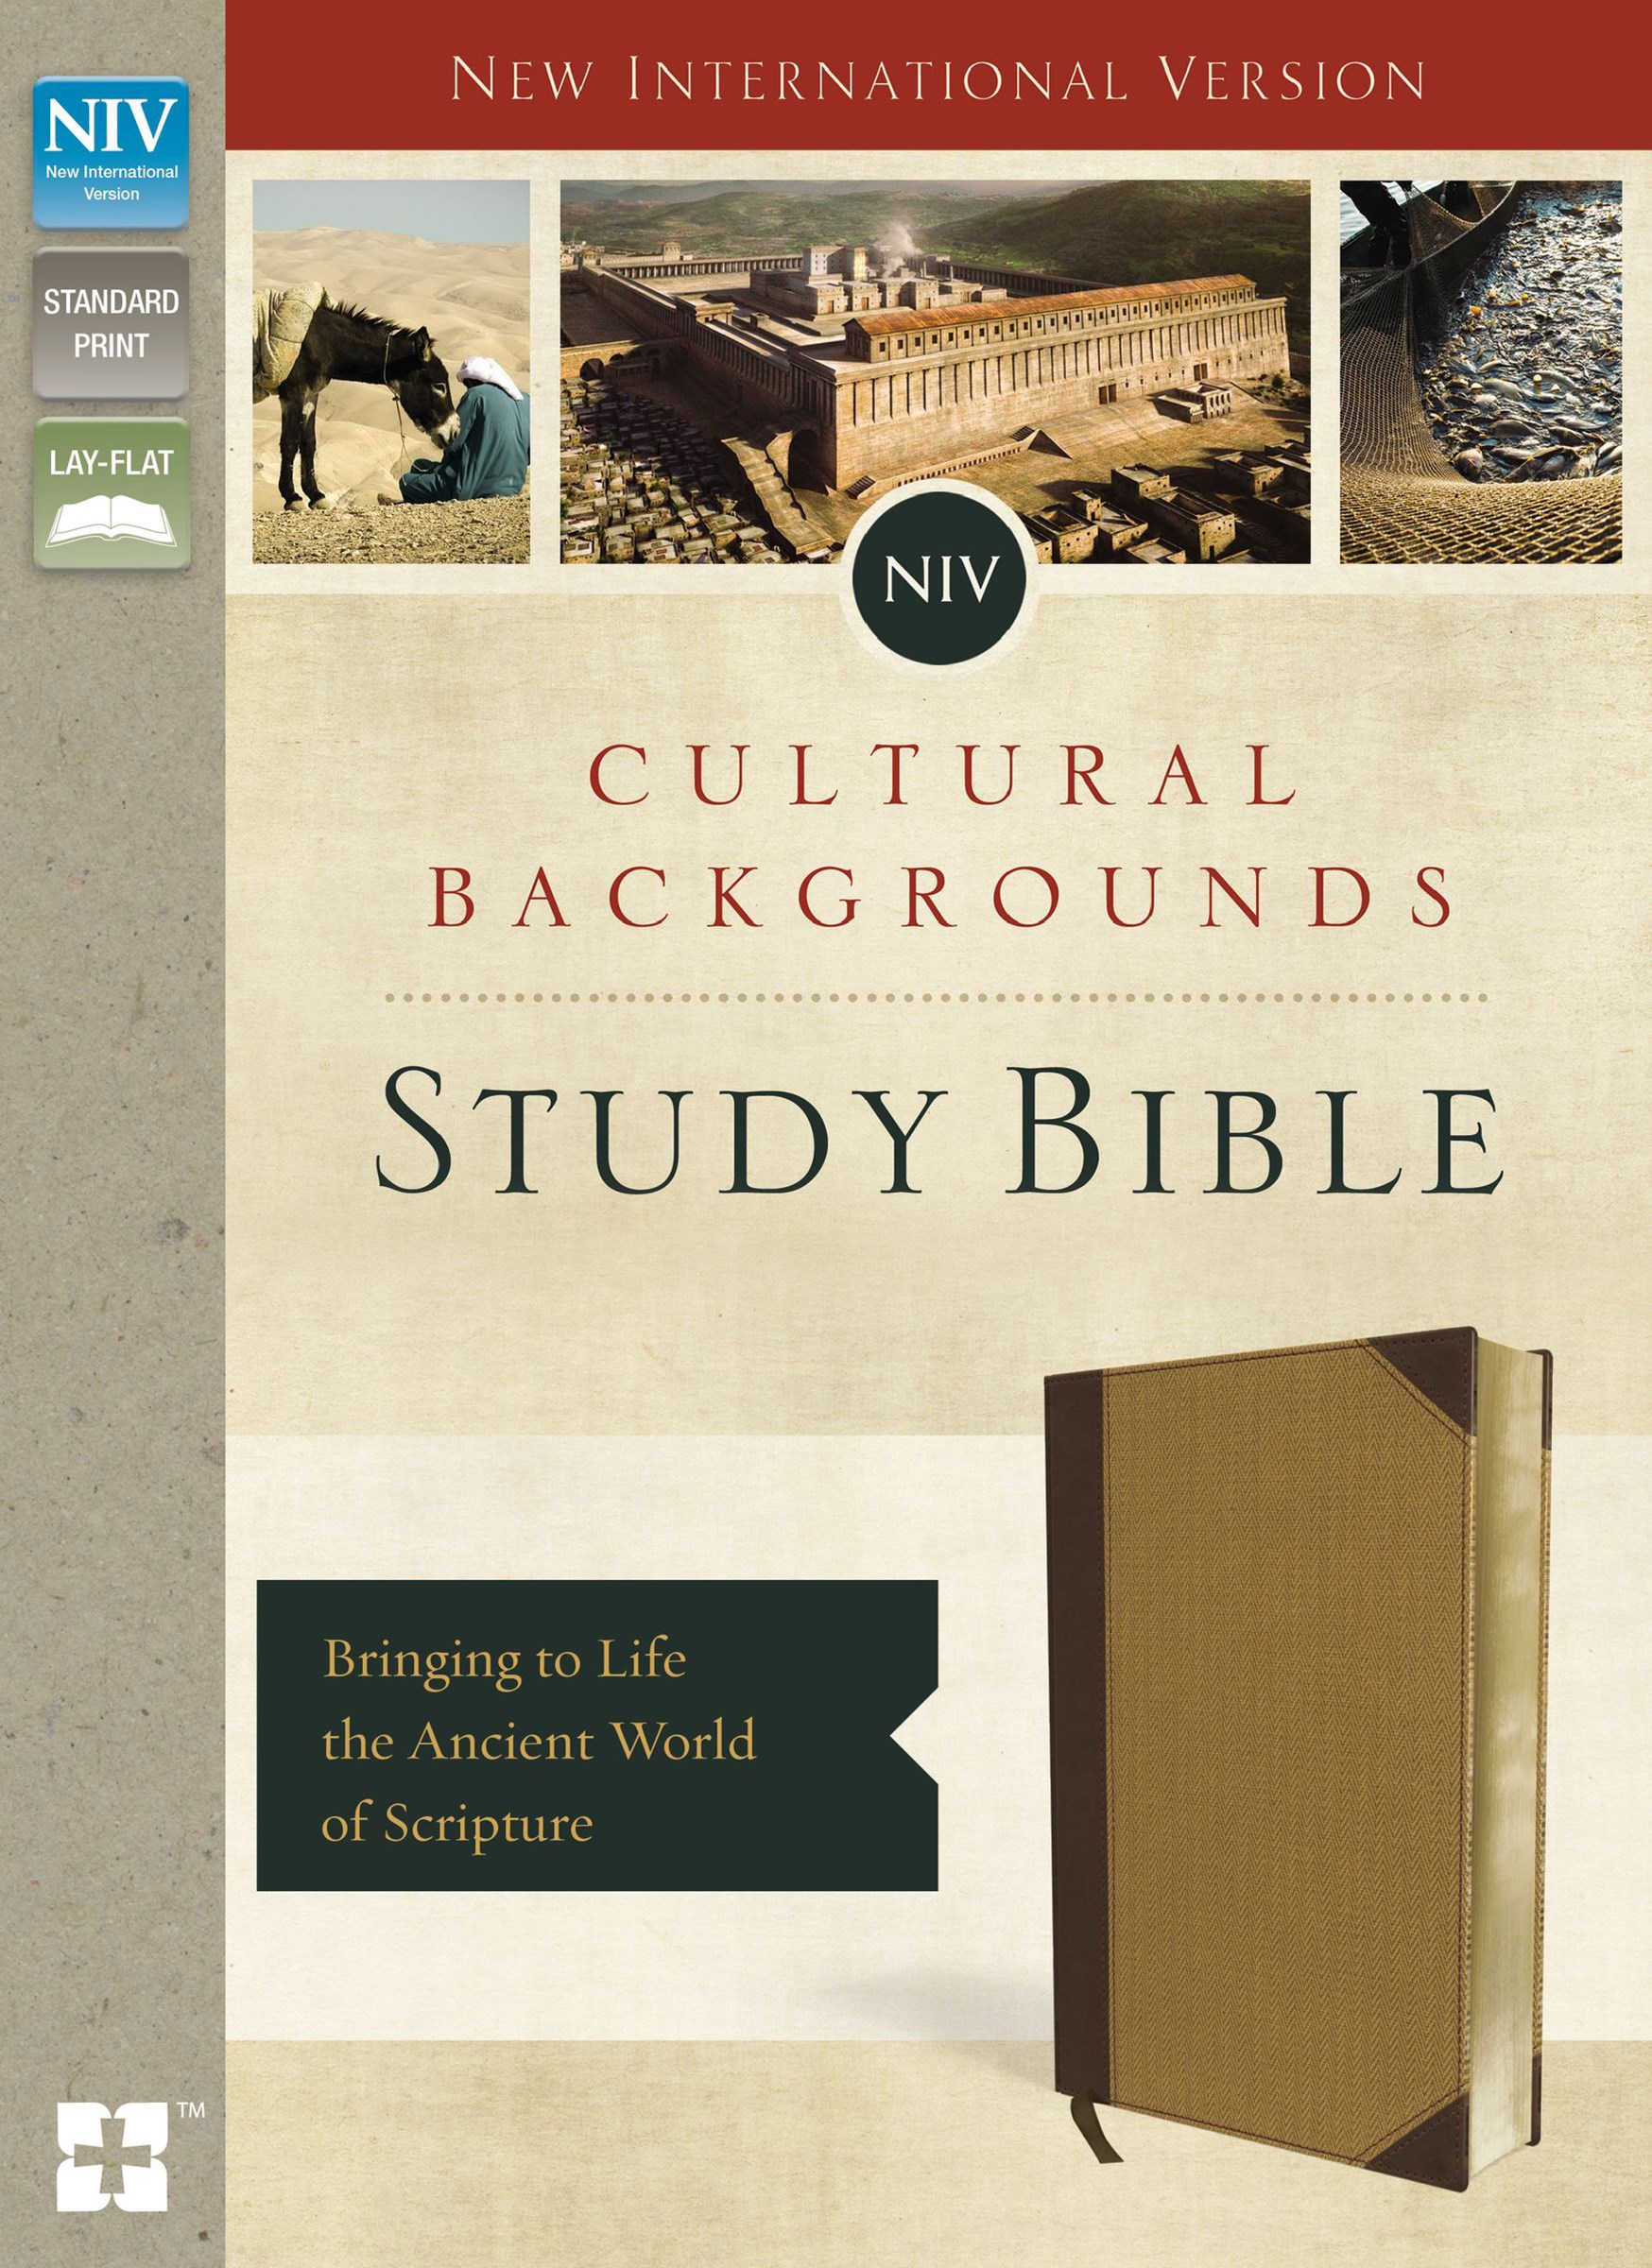 NIV, Cultural Backgrounds Study Bible: Bringing To Life The Ancient World Of Scripture [Italian Duo-Tone Brown/Tan]